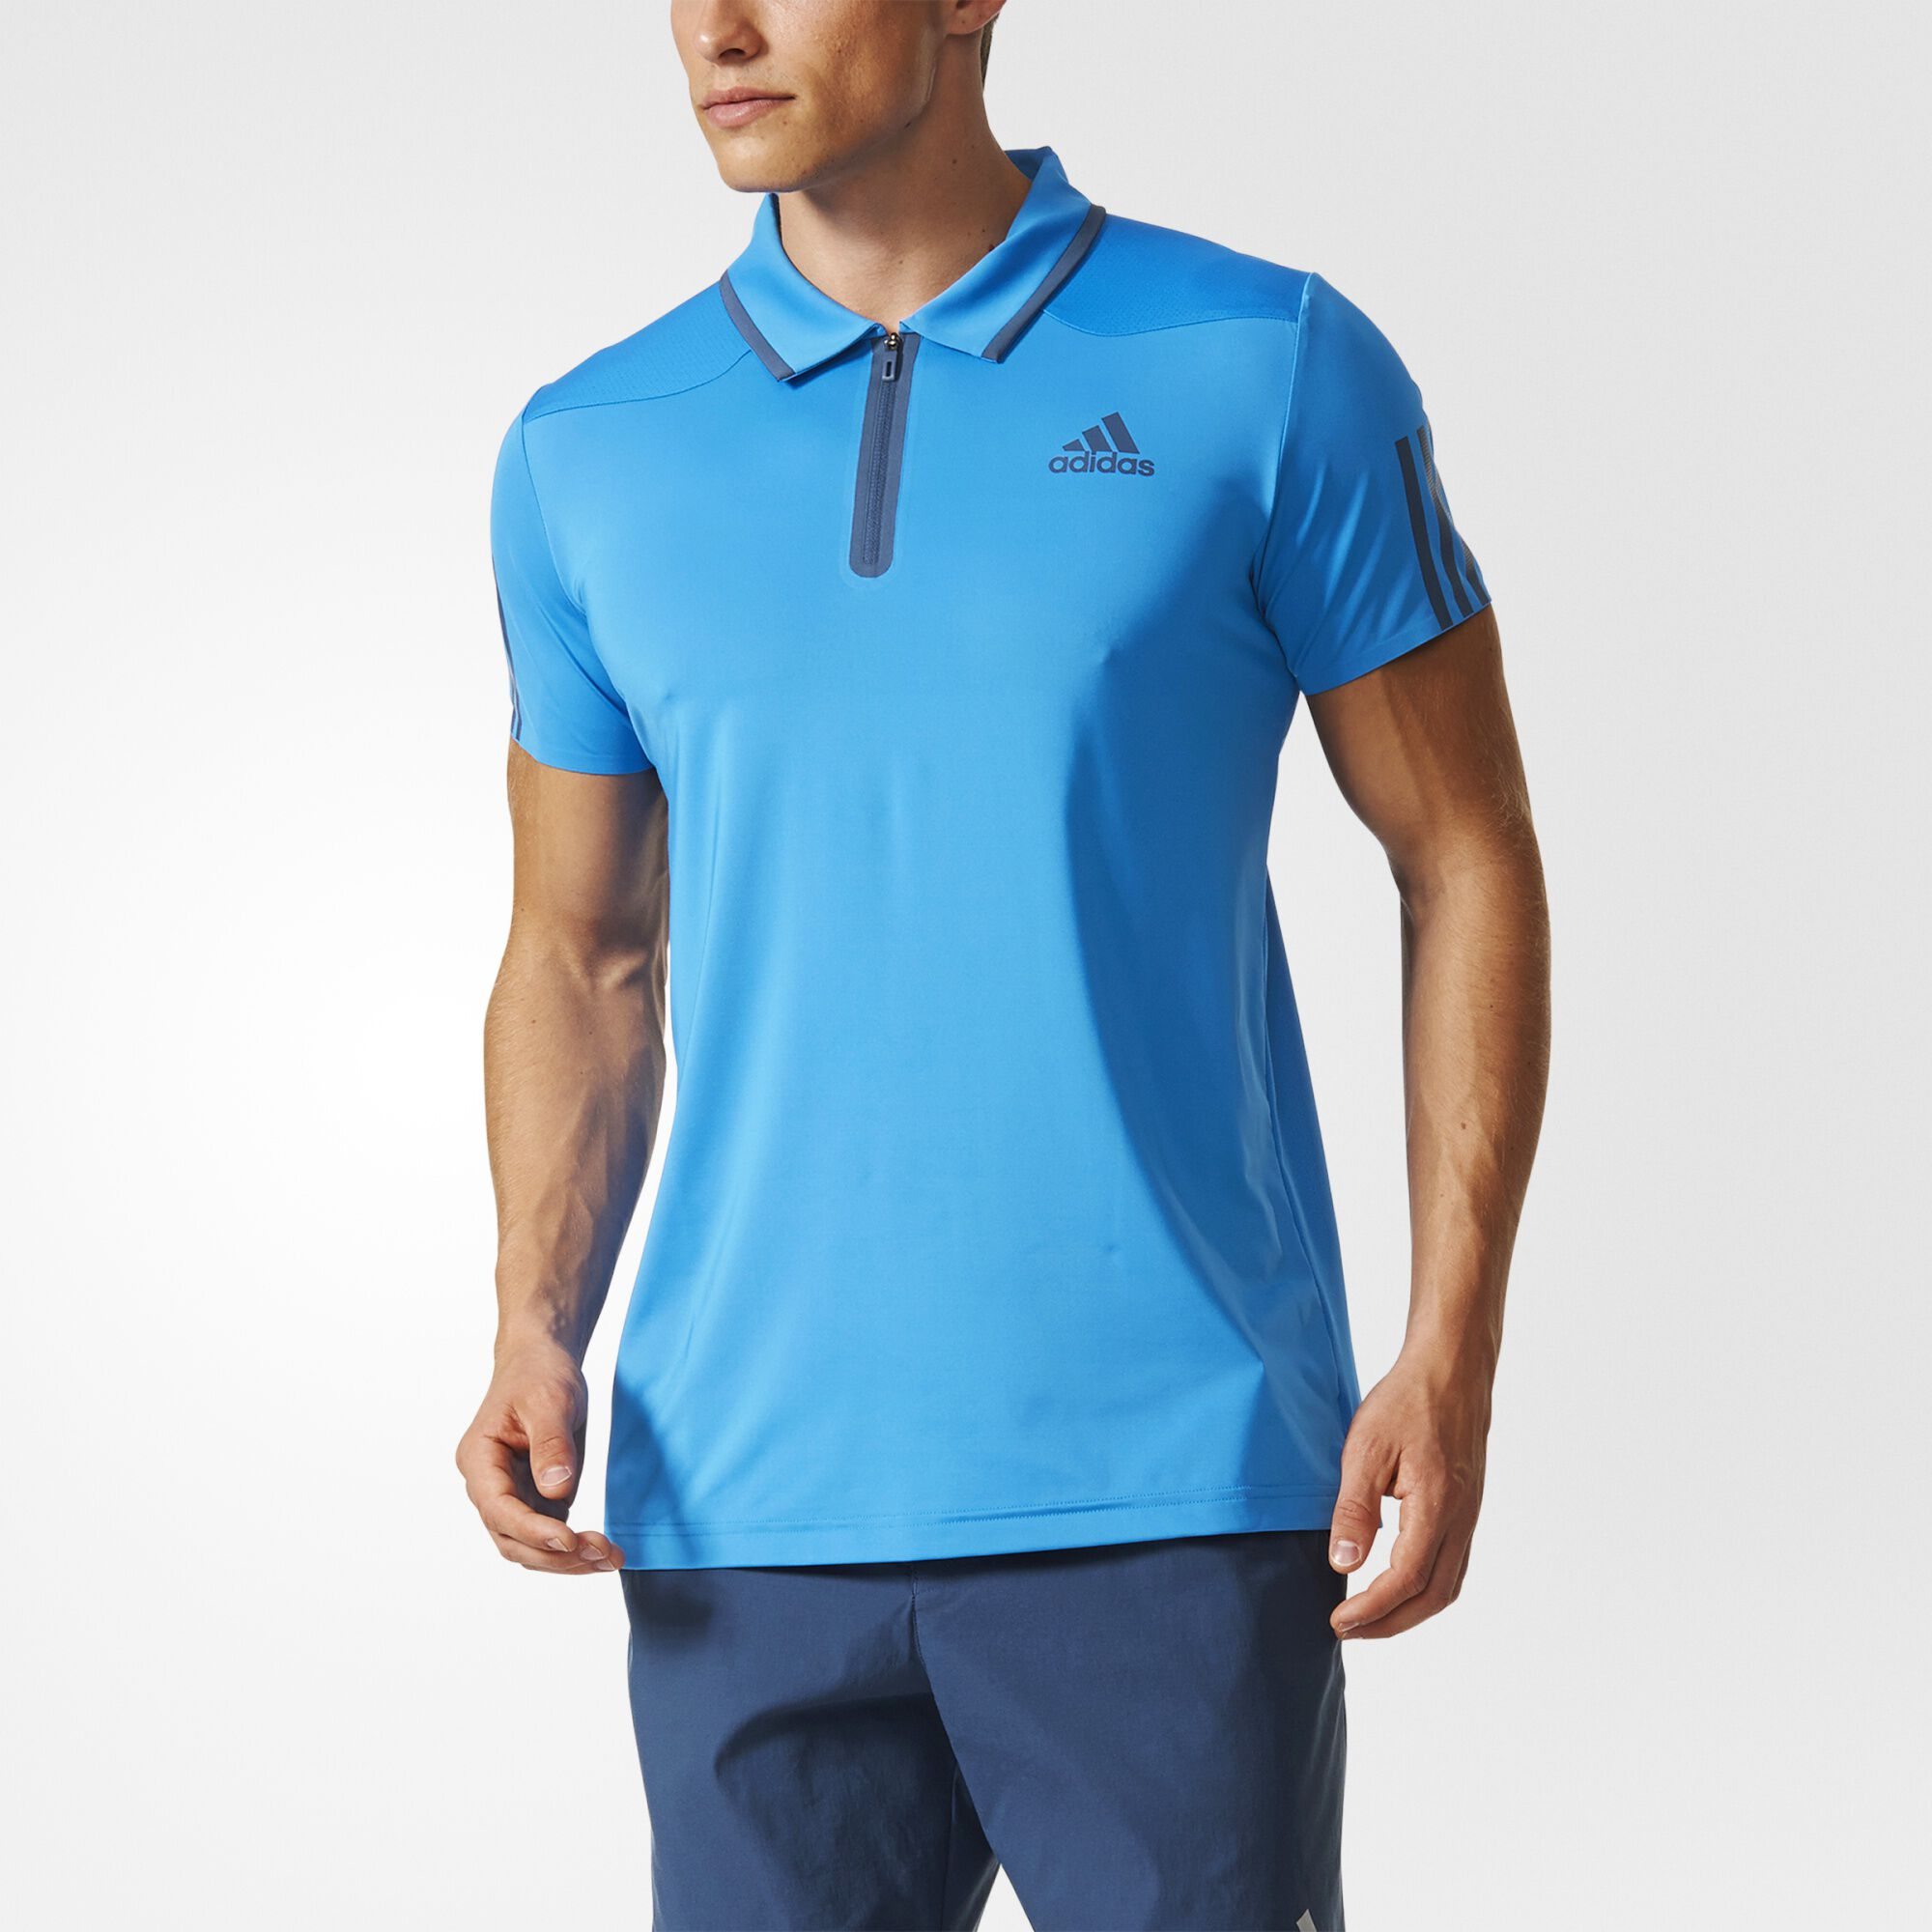 adidas mens tennis apparel